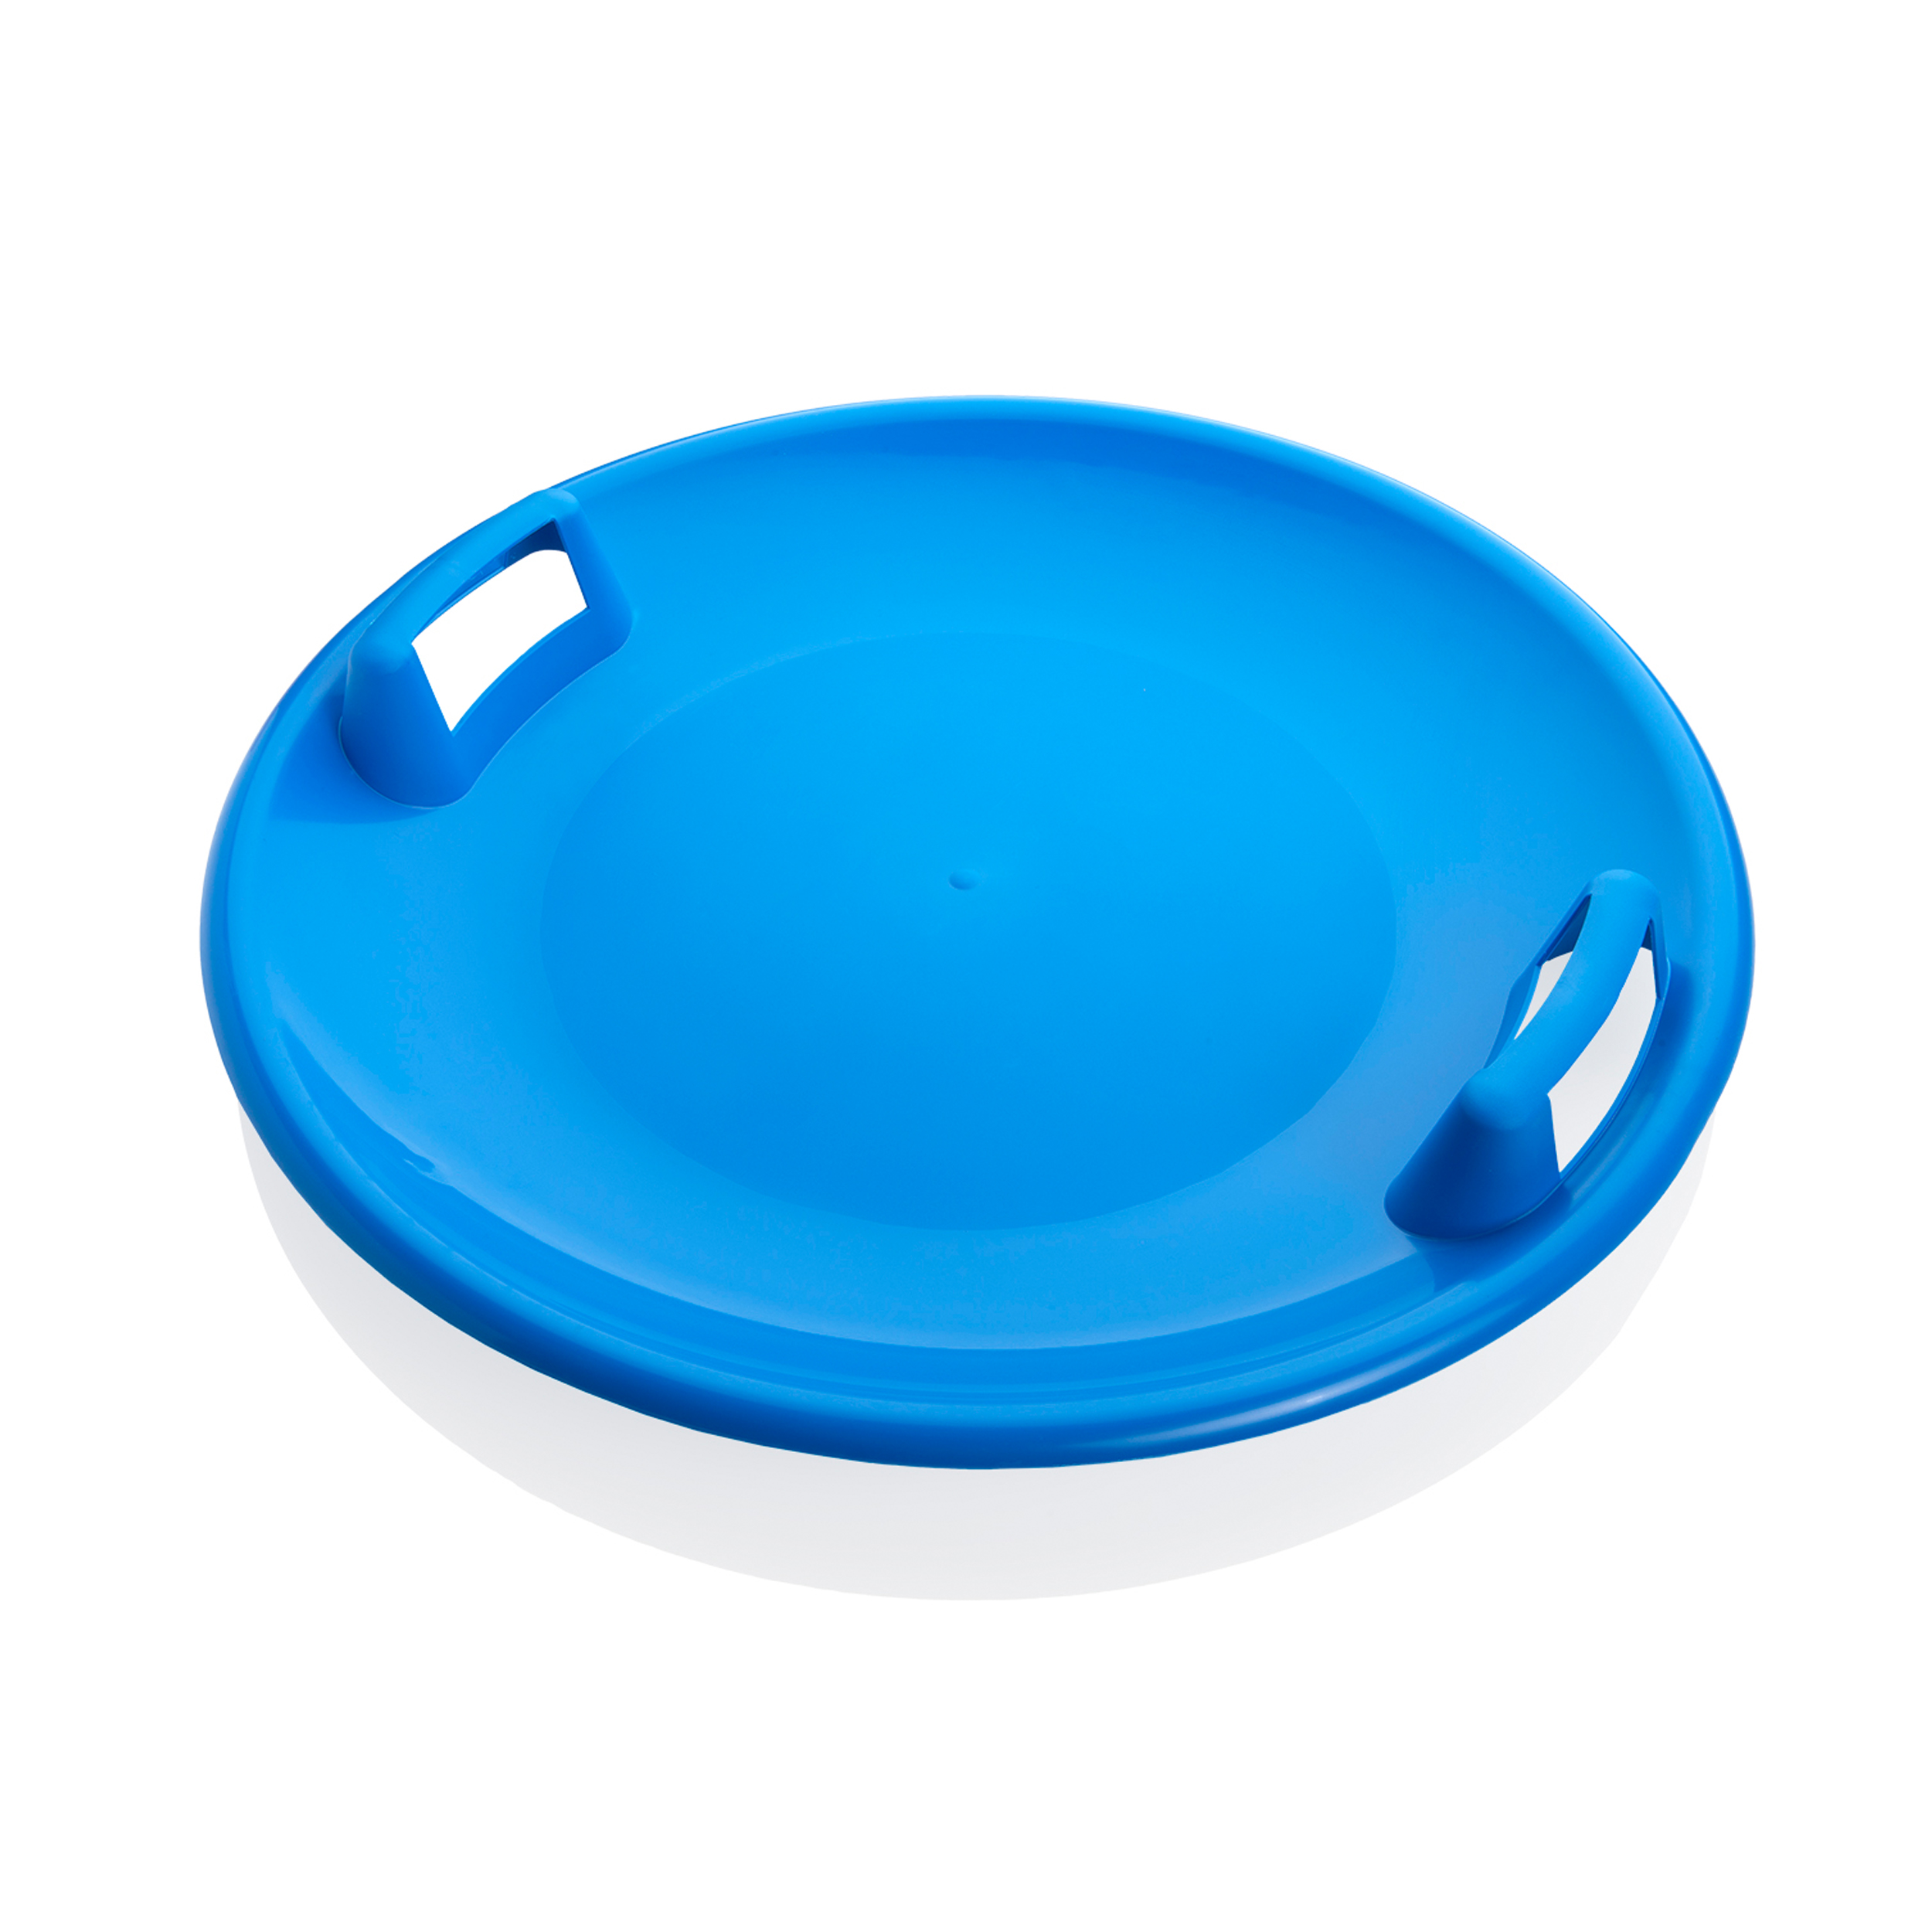 Superstar 24-Inch Saucer Snow Sled for Kids and Adults by Plastkon Blue by Plastkon